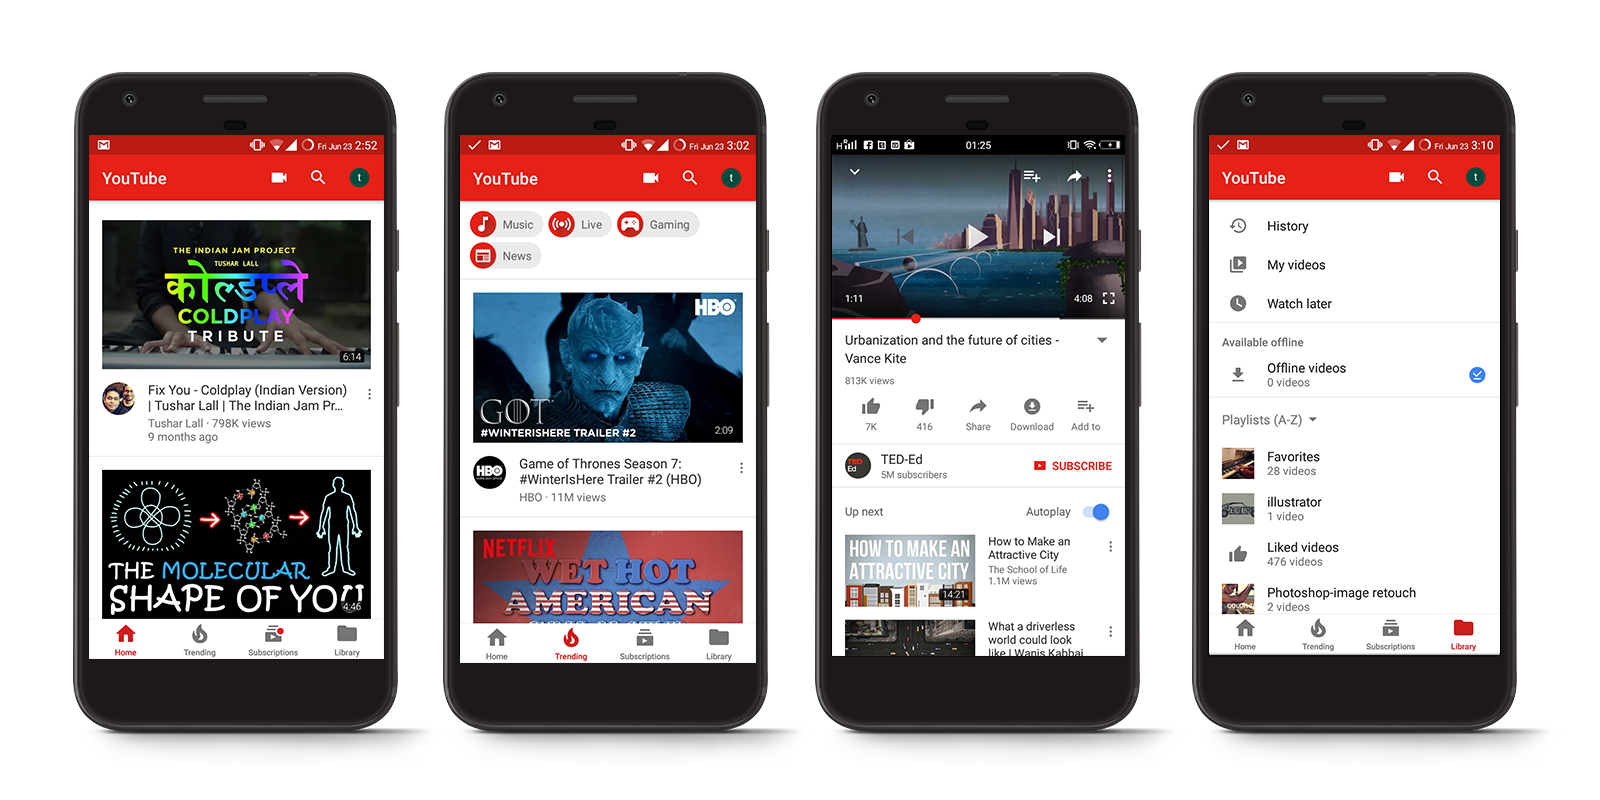 YouTube App: A Design Review - Pen | Bold Kiln Press - Medium